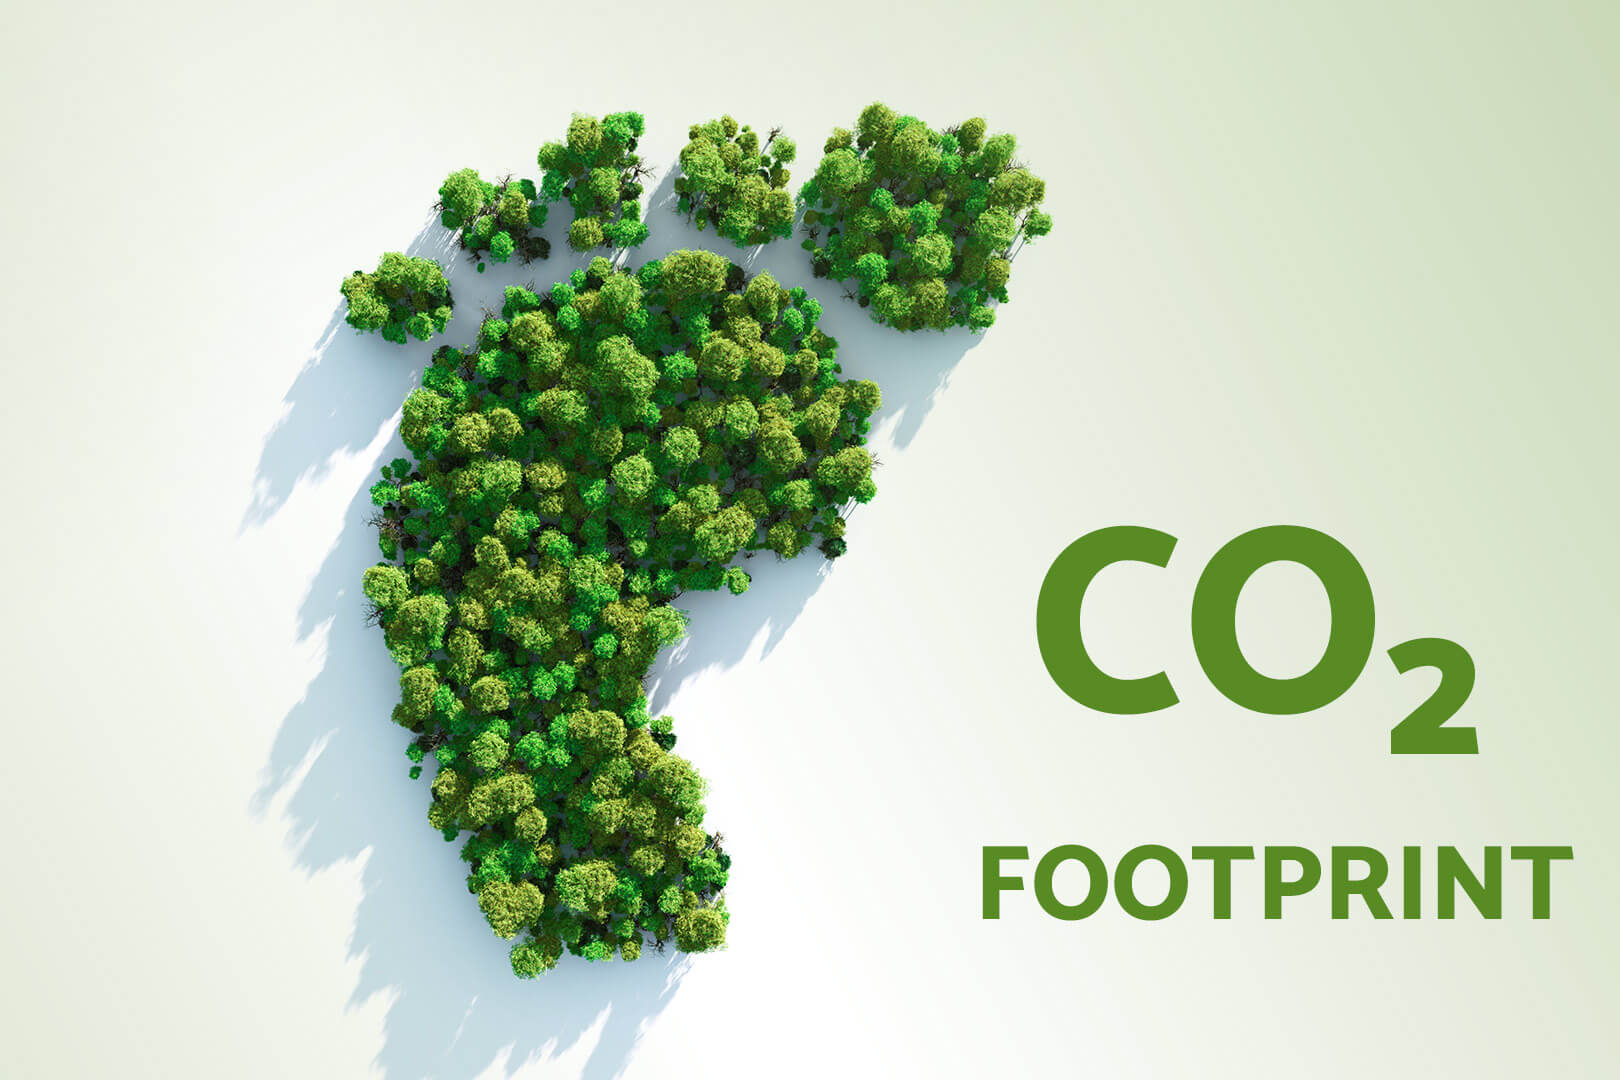 schaebens-co2-corporate-carbon-footprint-klimaneutral-klimaneutralitaet-bilanz-ausgleich